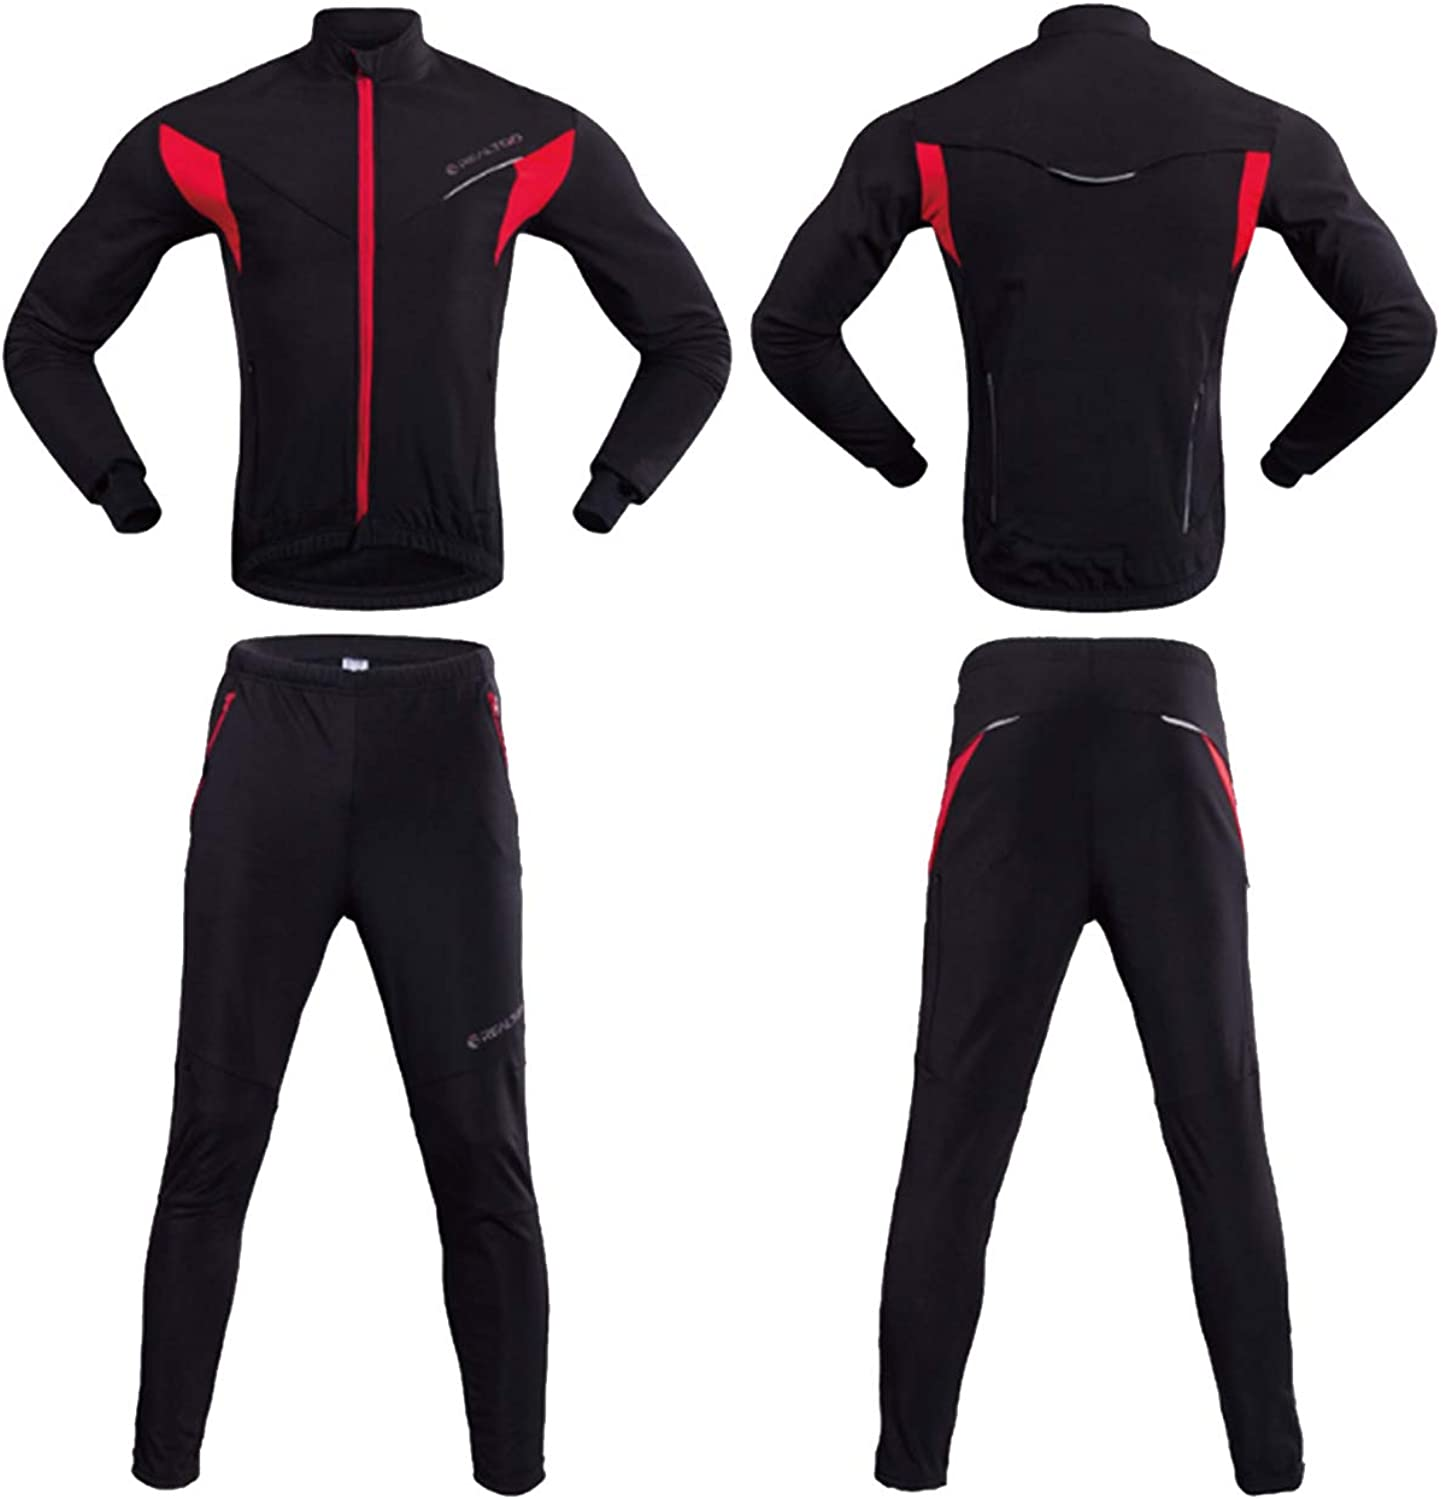 ArryJing Men's Cycling Clothing Winter Thermal Fleece Long Sleeve Jersey Jacket + 3D Padded Pants Trousers